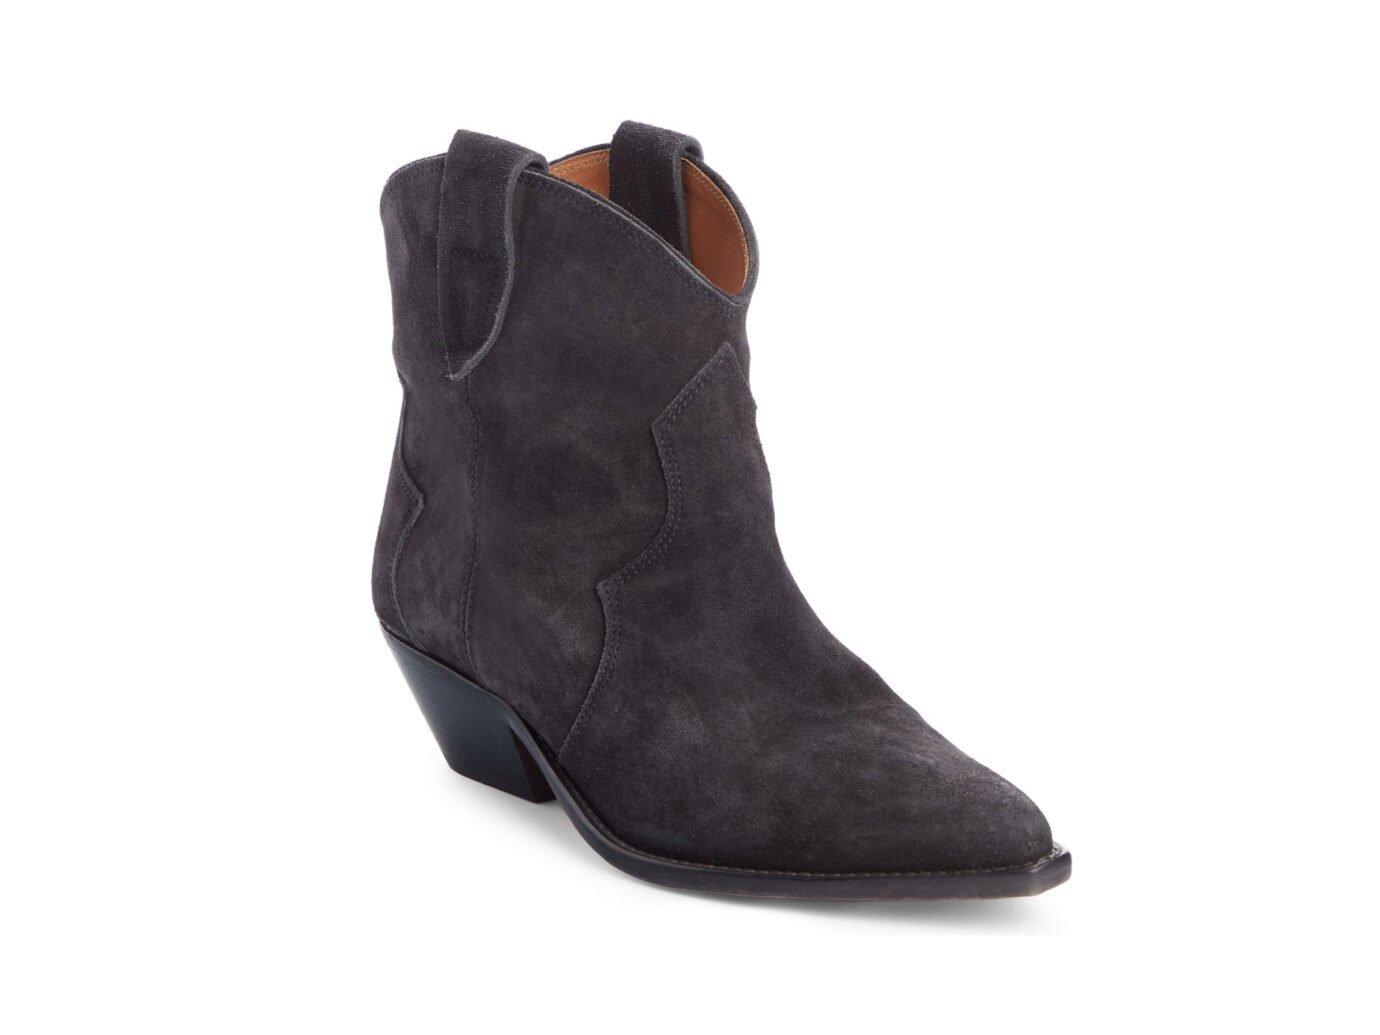 Isabel Marant Dewina Western Boot in Taupe